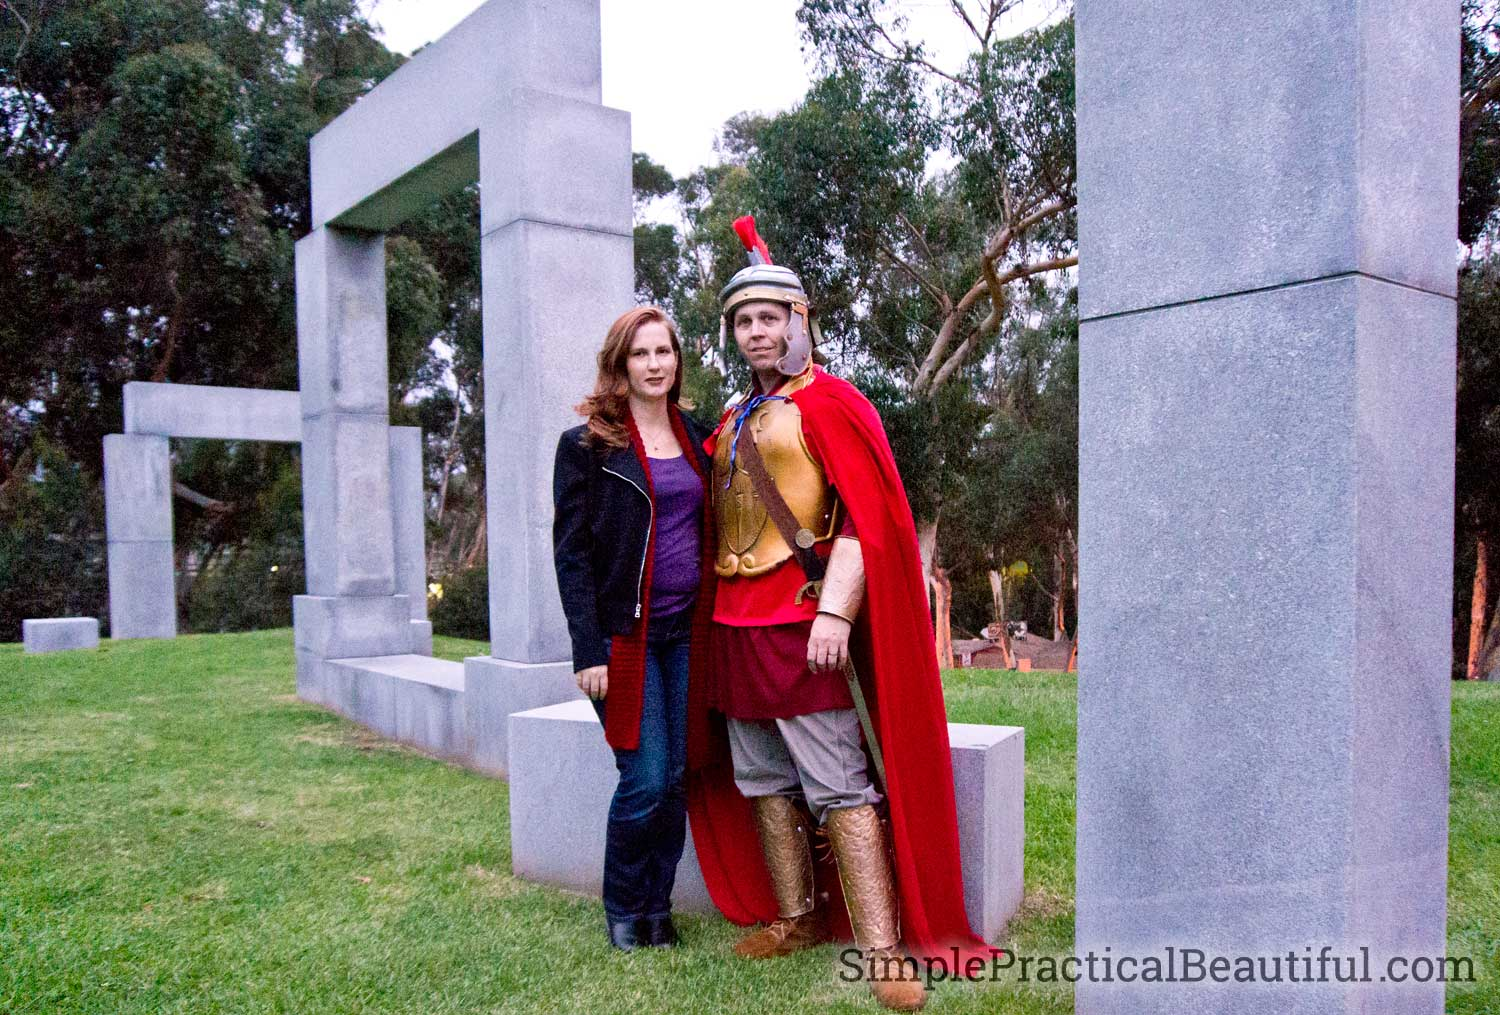 Rory Williams, the Last Centurion, and Amy Pond, the Girl Who Waited, costumes